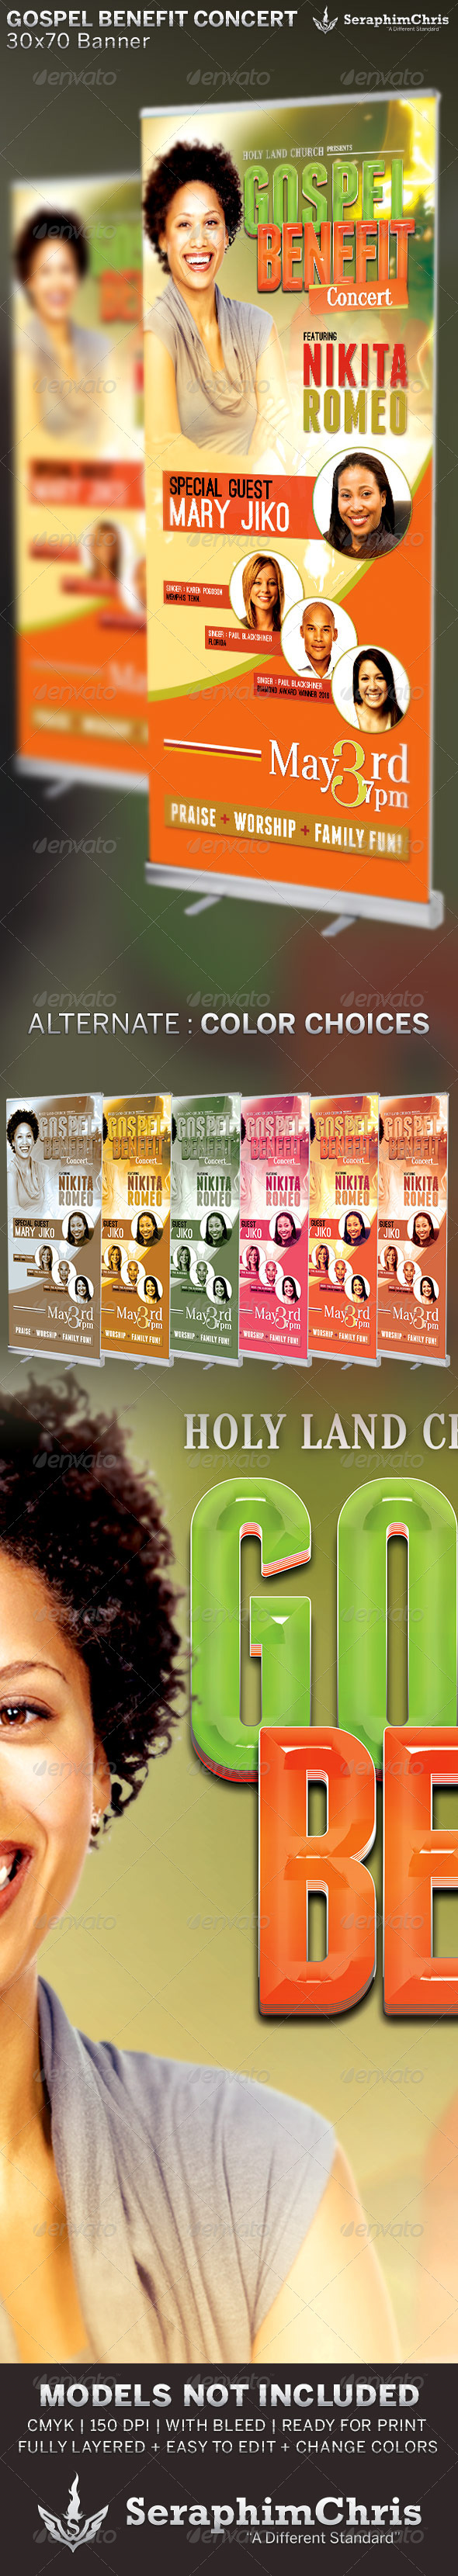 Gospel Benefit Concert: Church Banner Template - Signage Print Templates